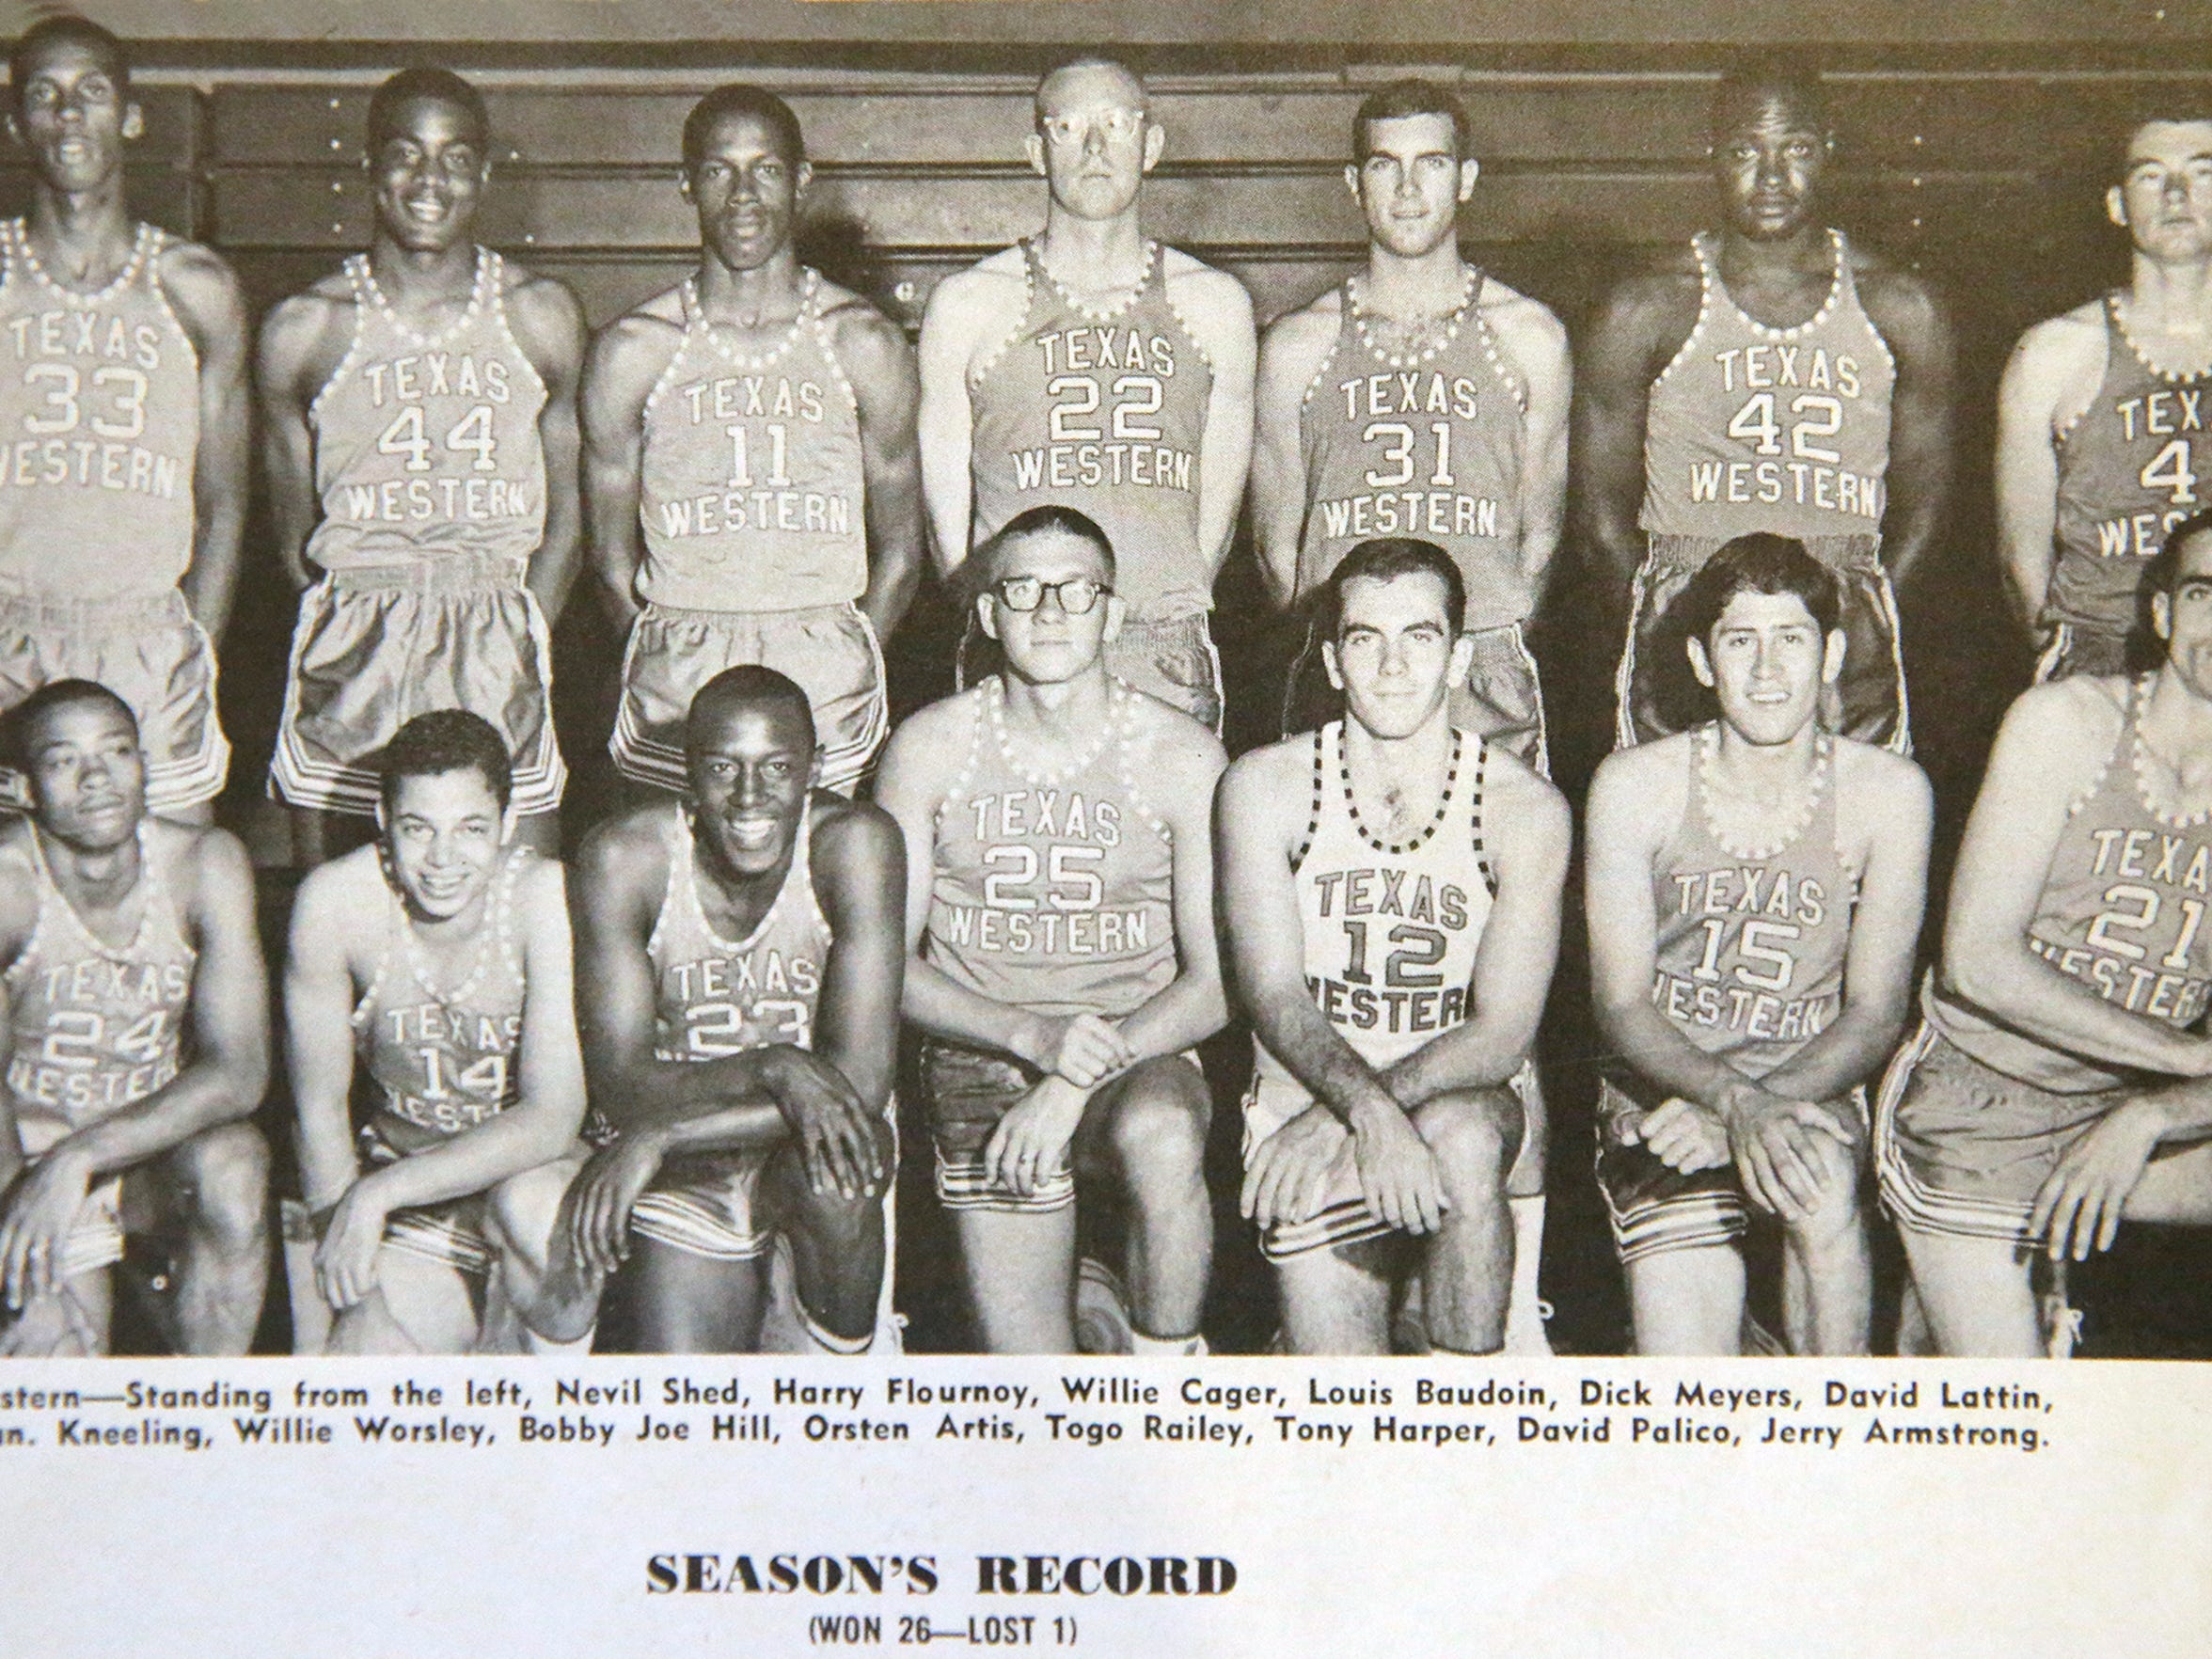 The Texas Western College team photo in the official